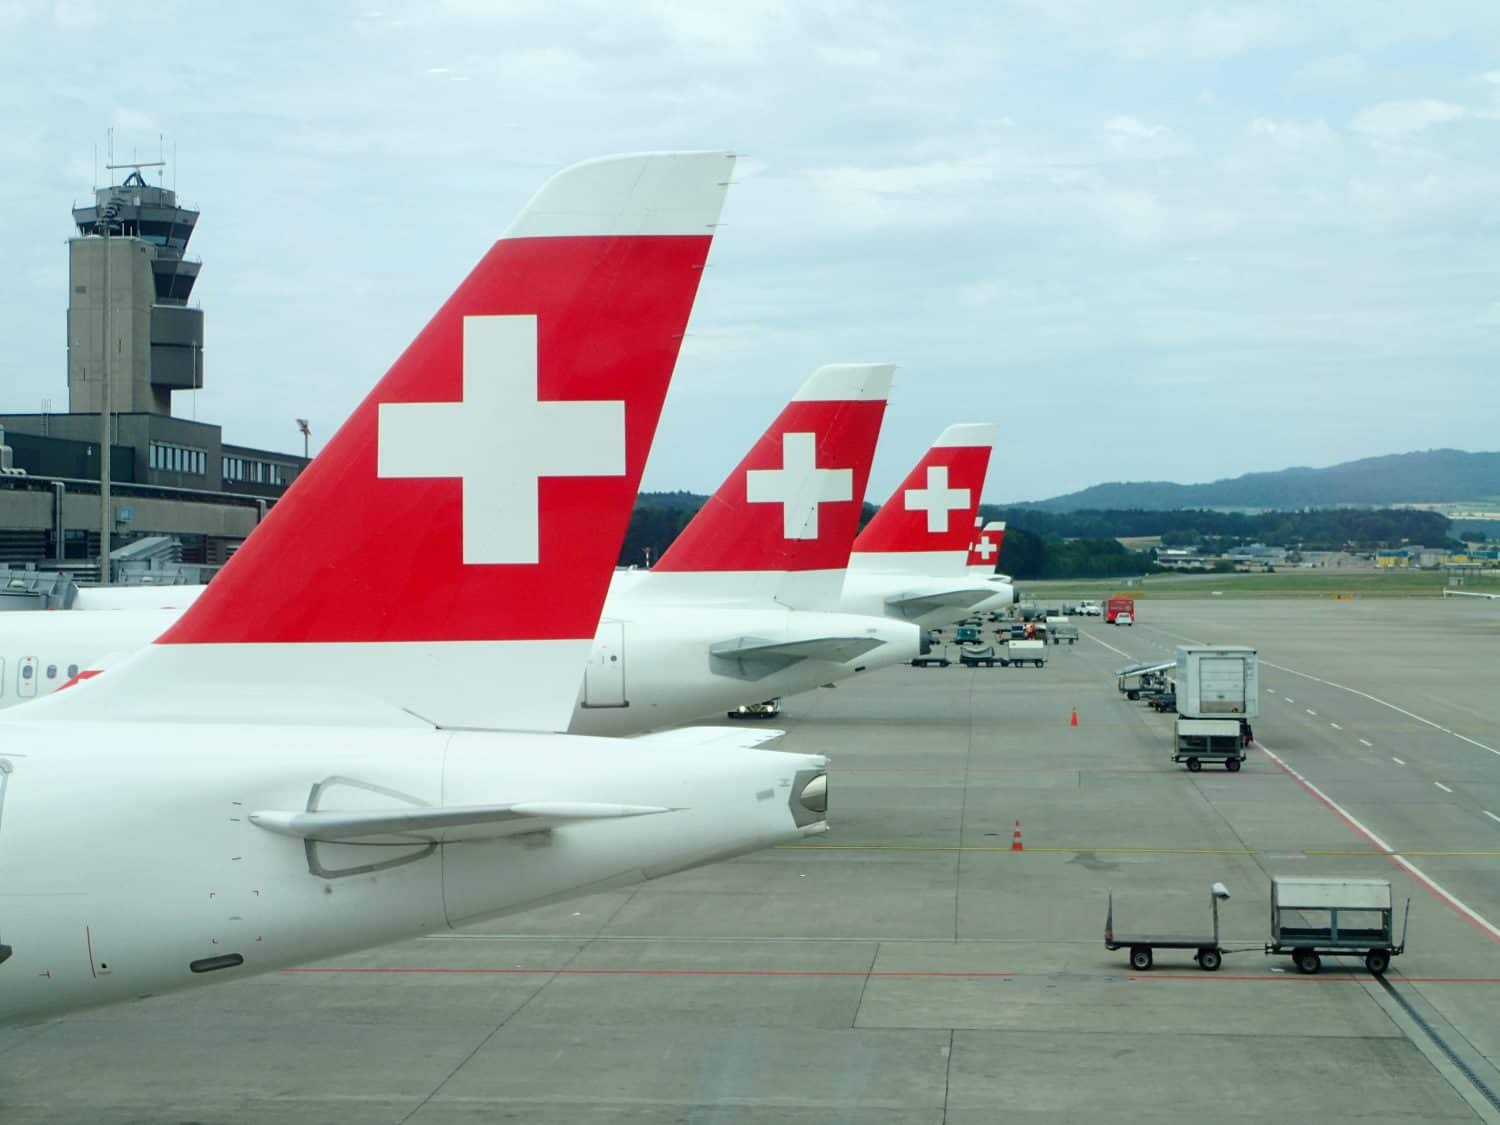 Three tails of Swiss Air planes in a row at New York airport